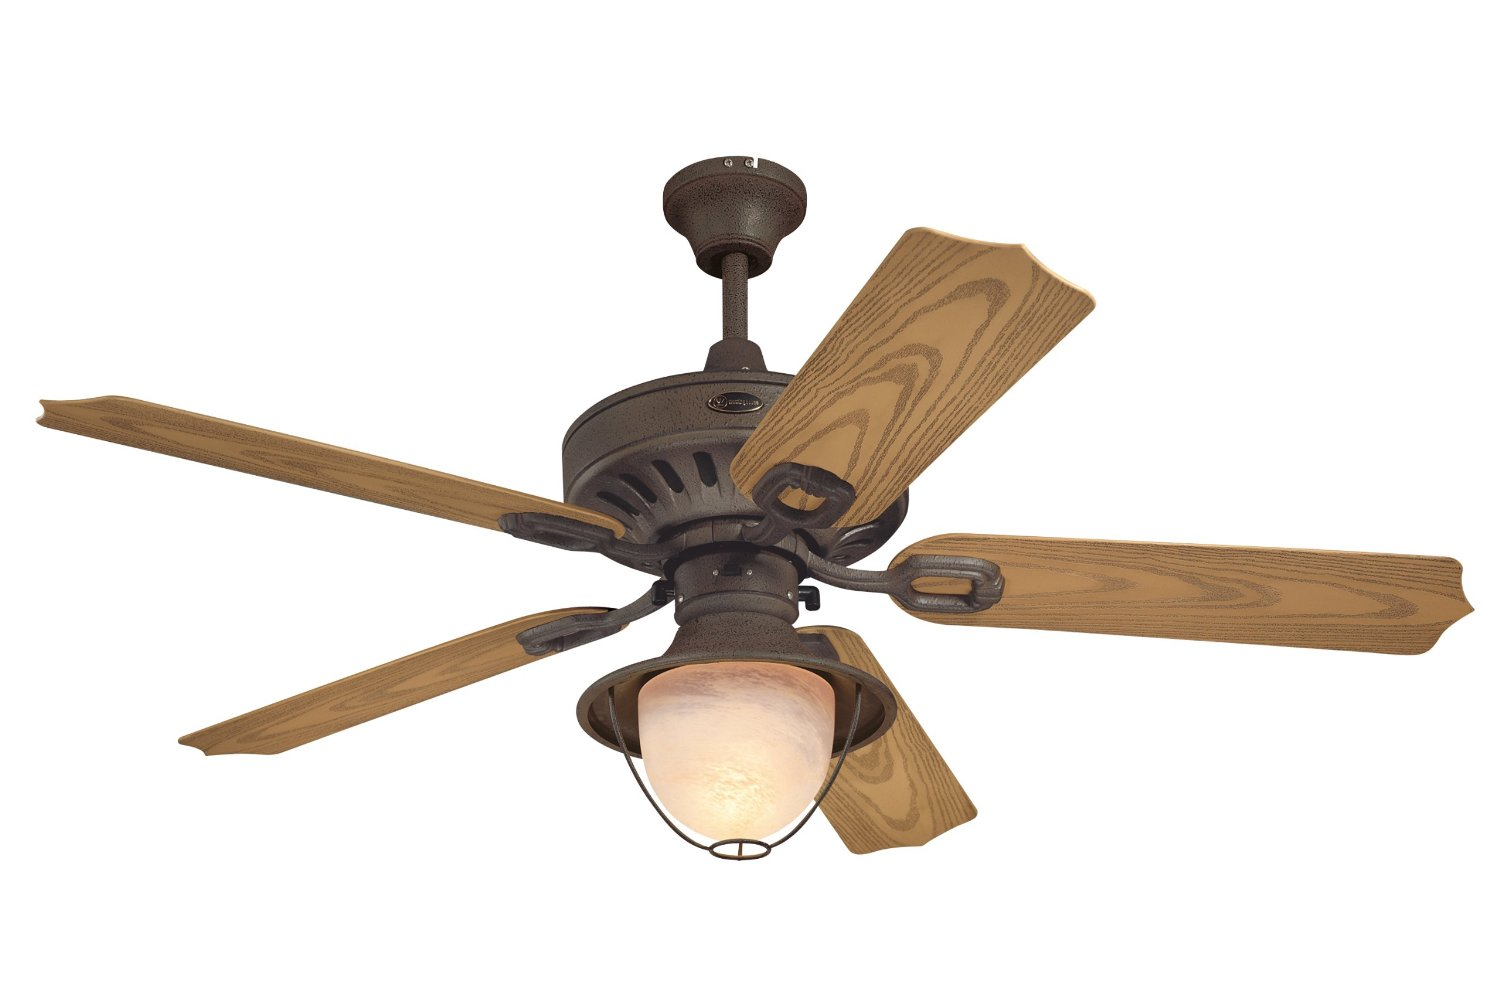 Oak Ceiling Fans With Lights : Westinghouse  quot lafayette ceiling fan w light